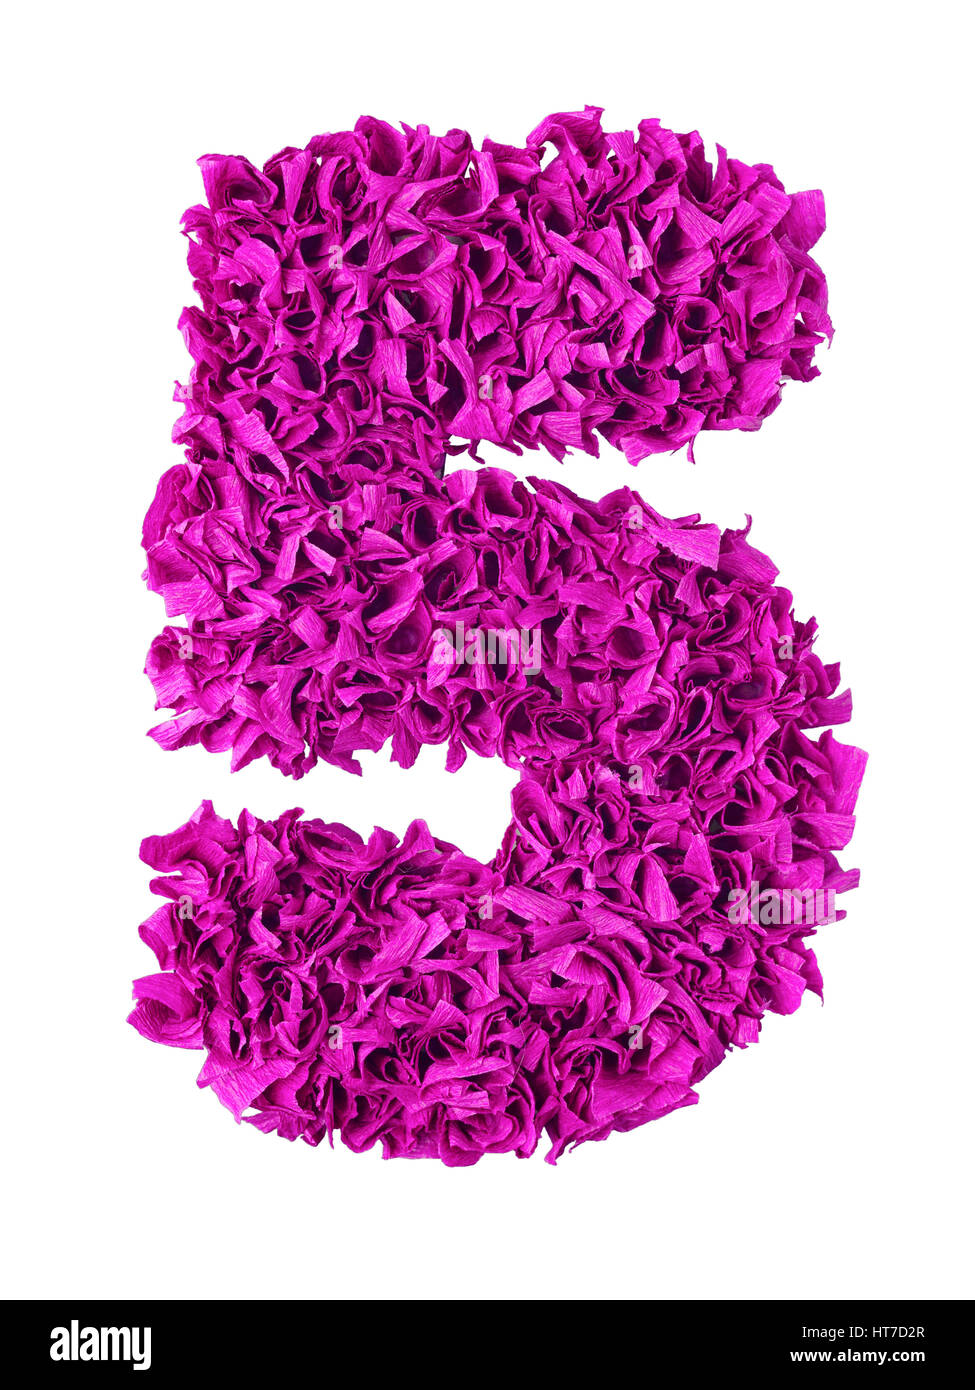 Five. Handmade number 5 from magenta color crepe paper isolated on white background. Set of pink numbers from scraps - Stock Image